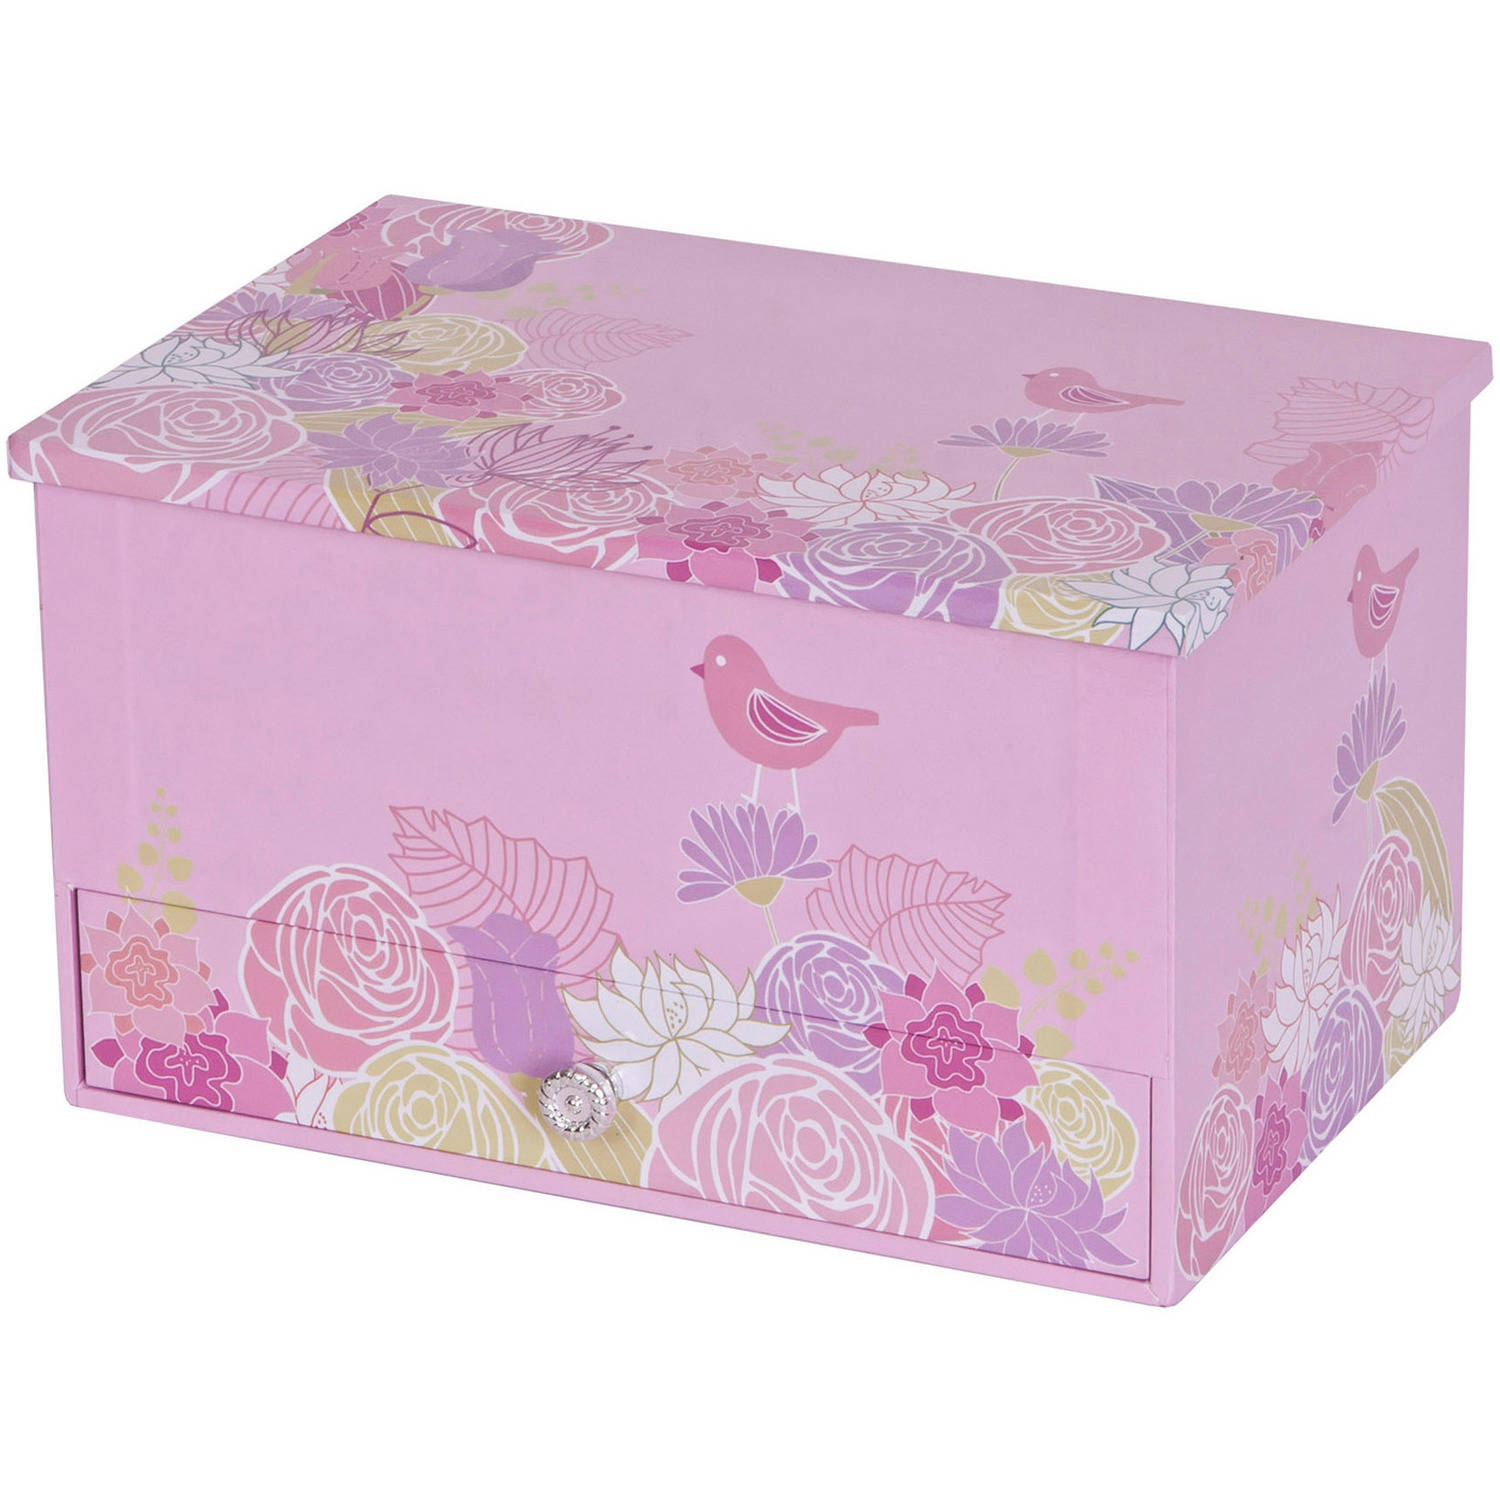 Mele Designs Posey Girl's Musical Ballerina Jewelry Box